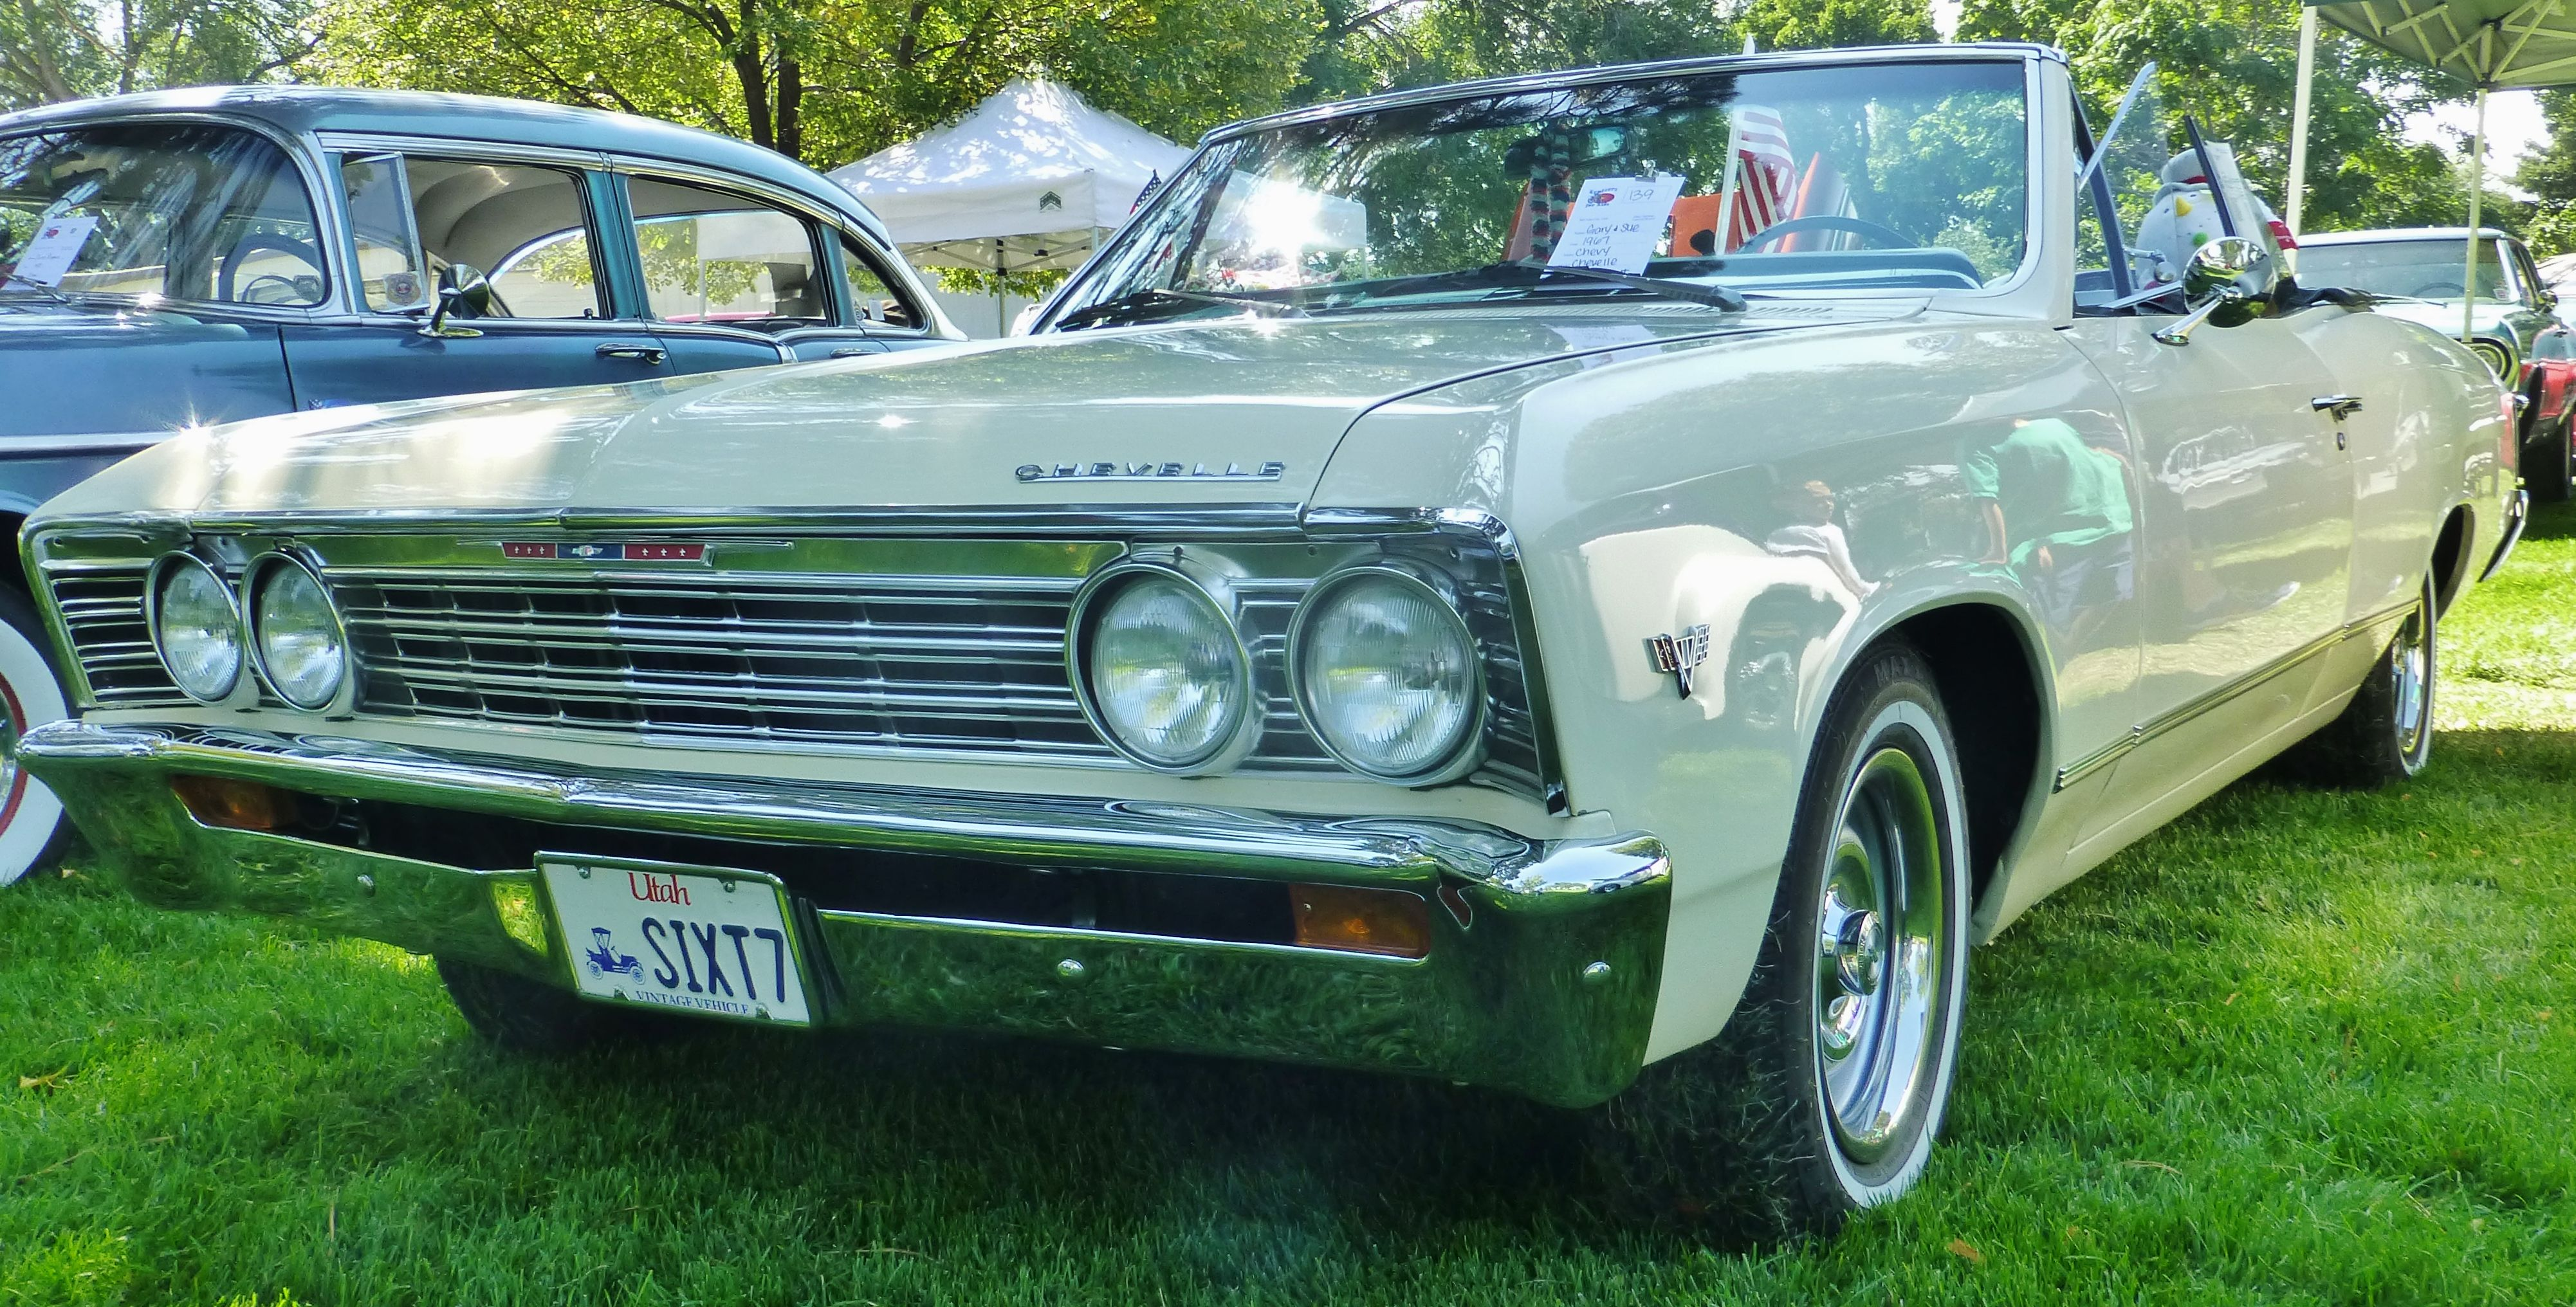 1967 Chevrolet Chevelle. Photography by David E. Nelson, 2017 ...